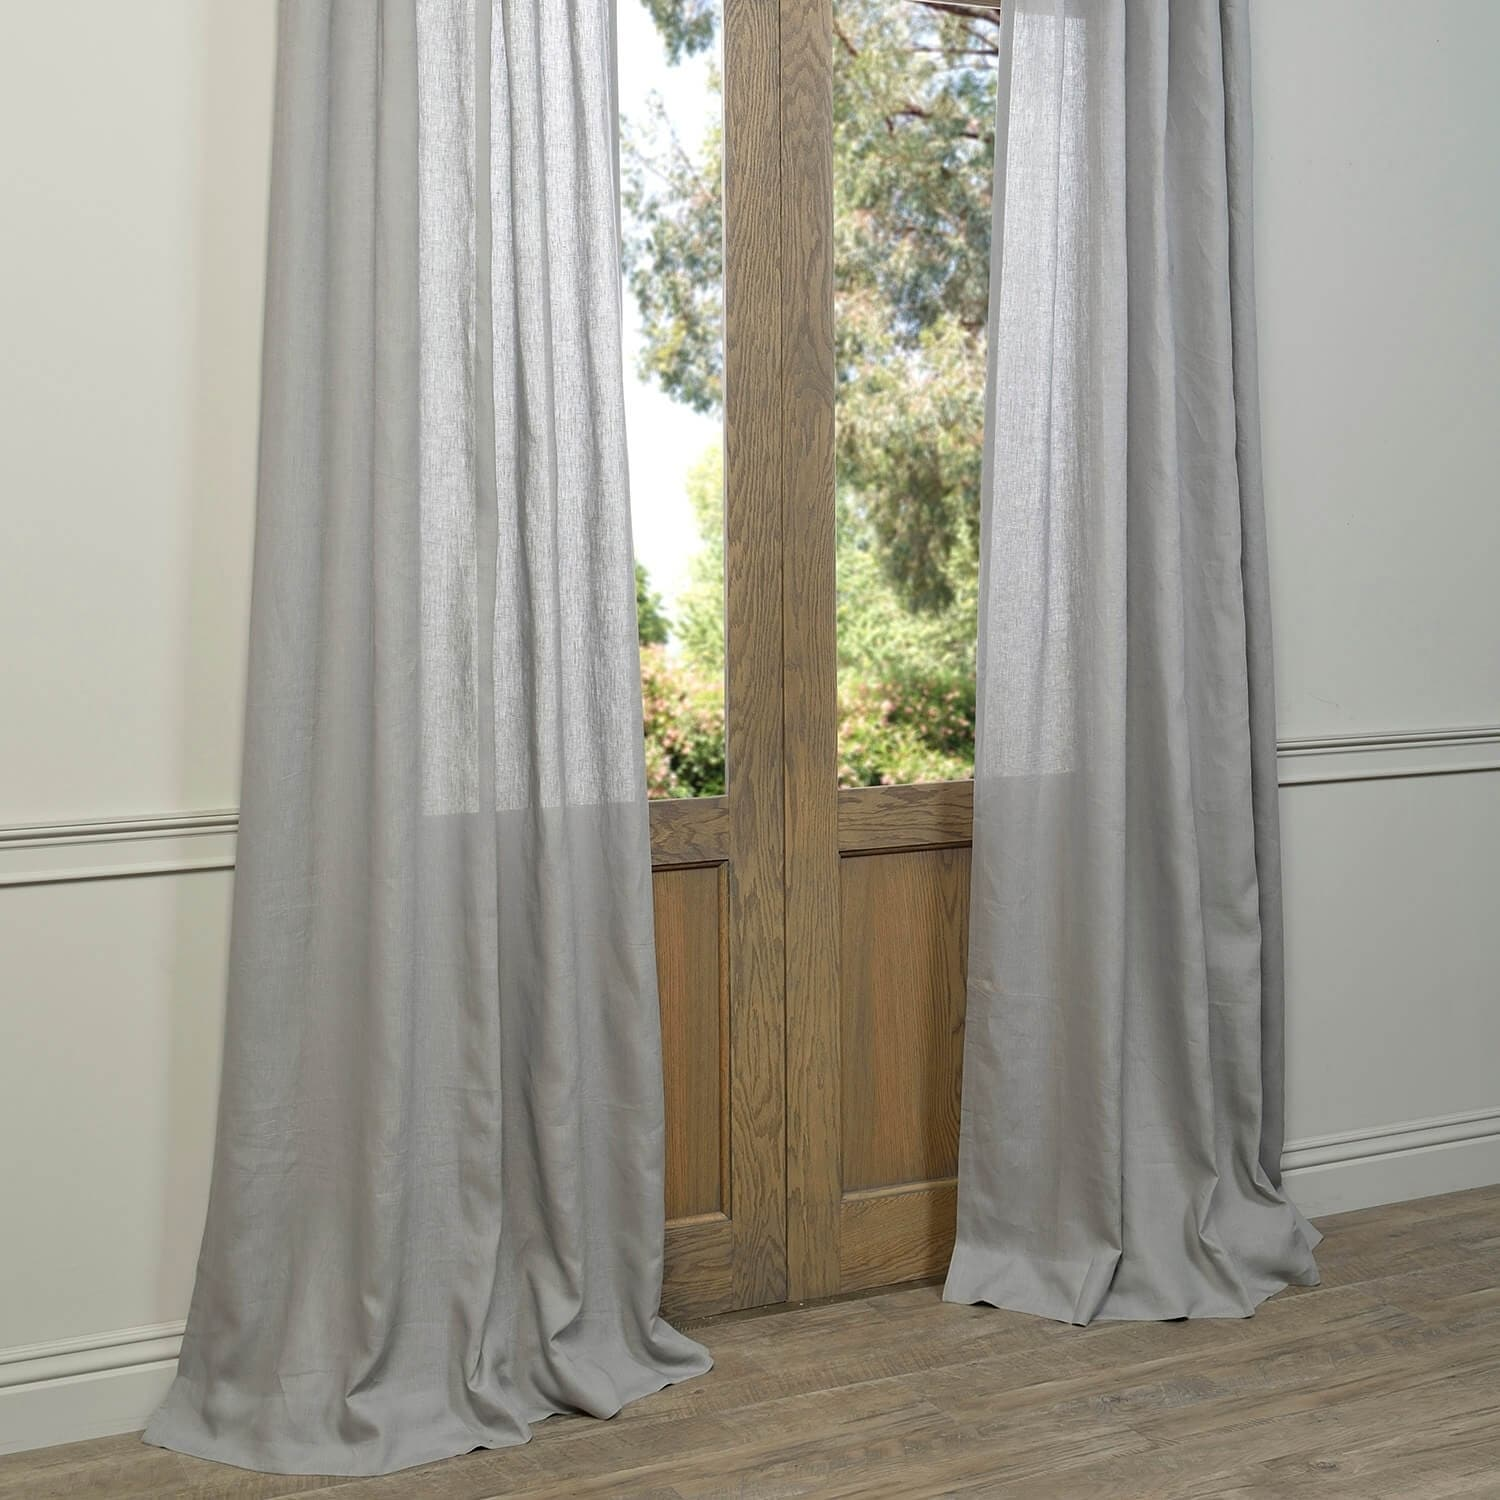 curtains white fana curtain share linen htm